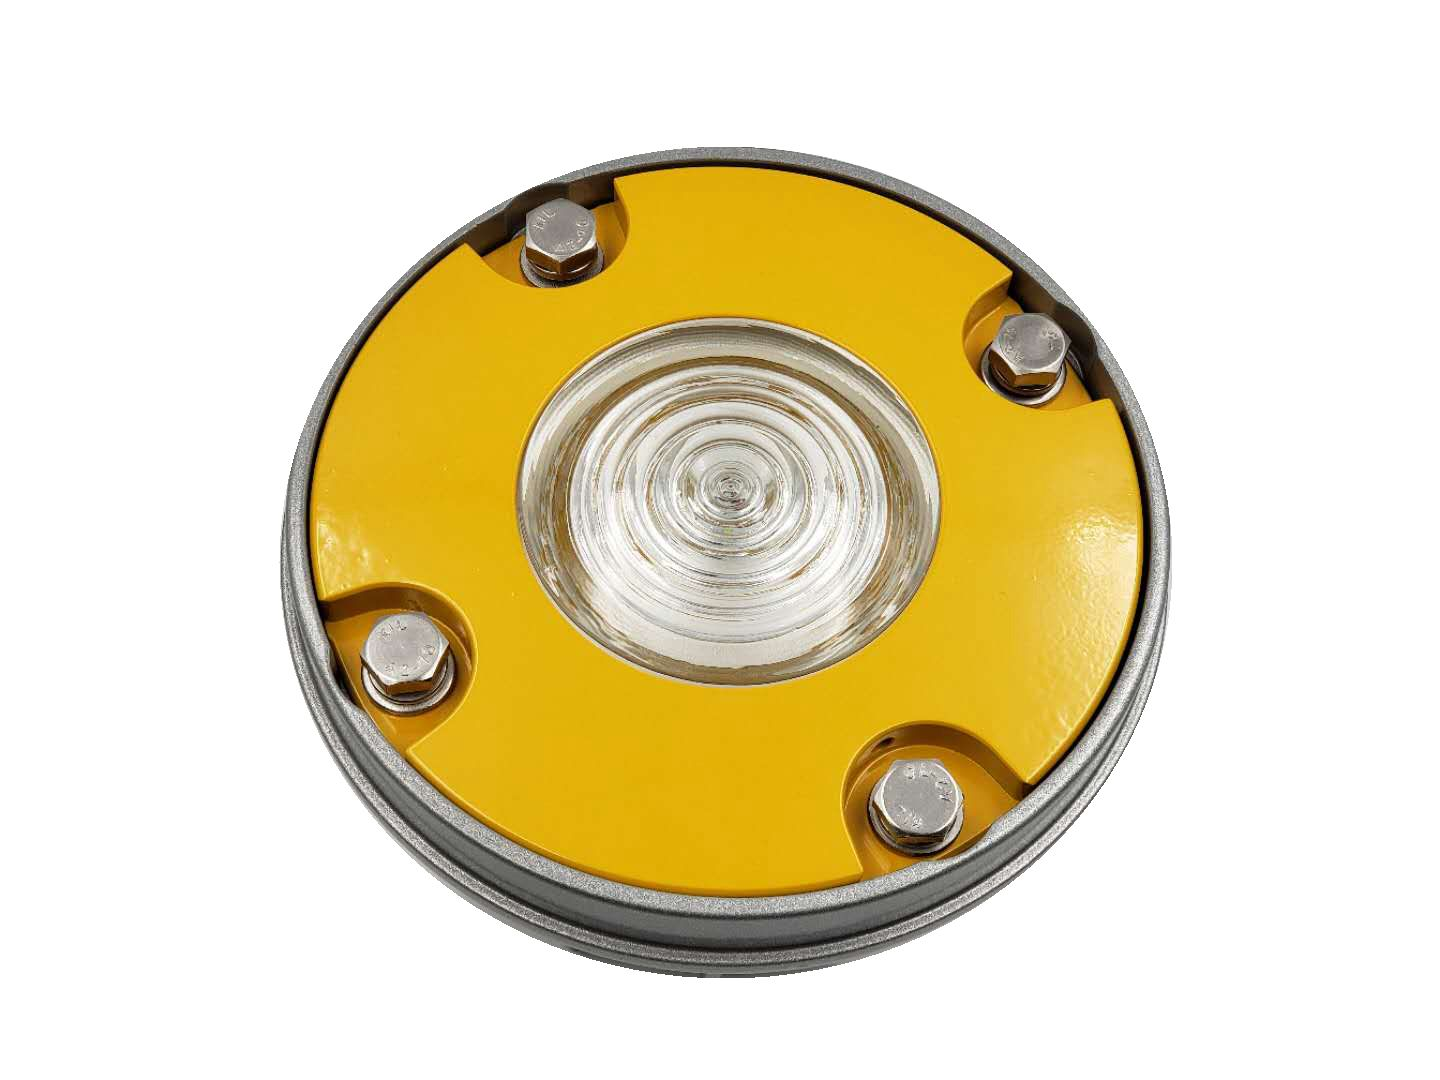 Heliport inset aiming point light for sale